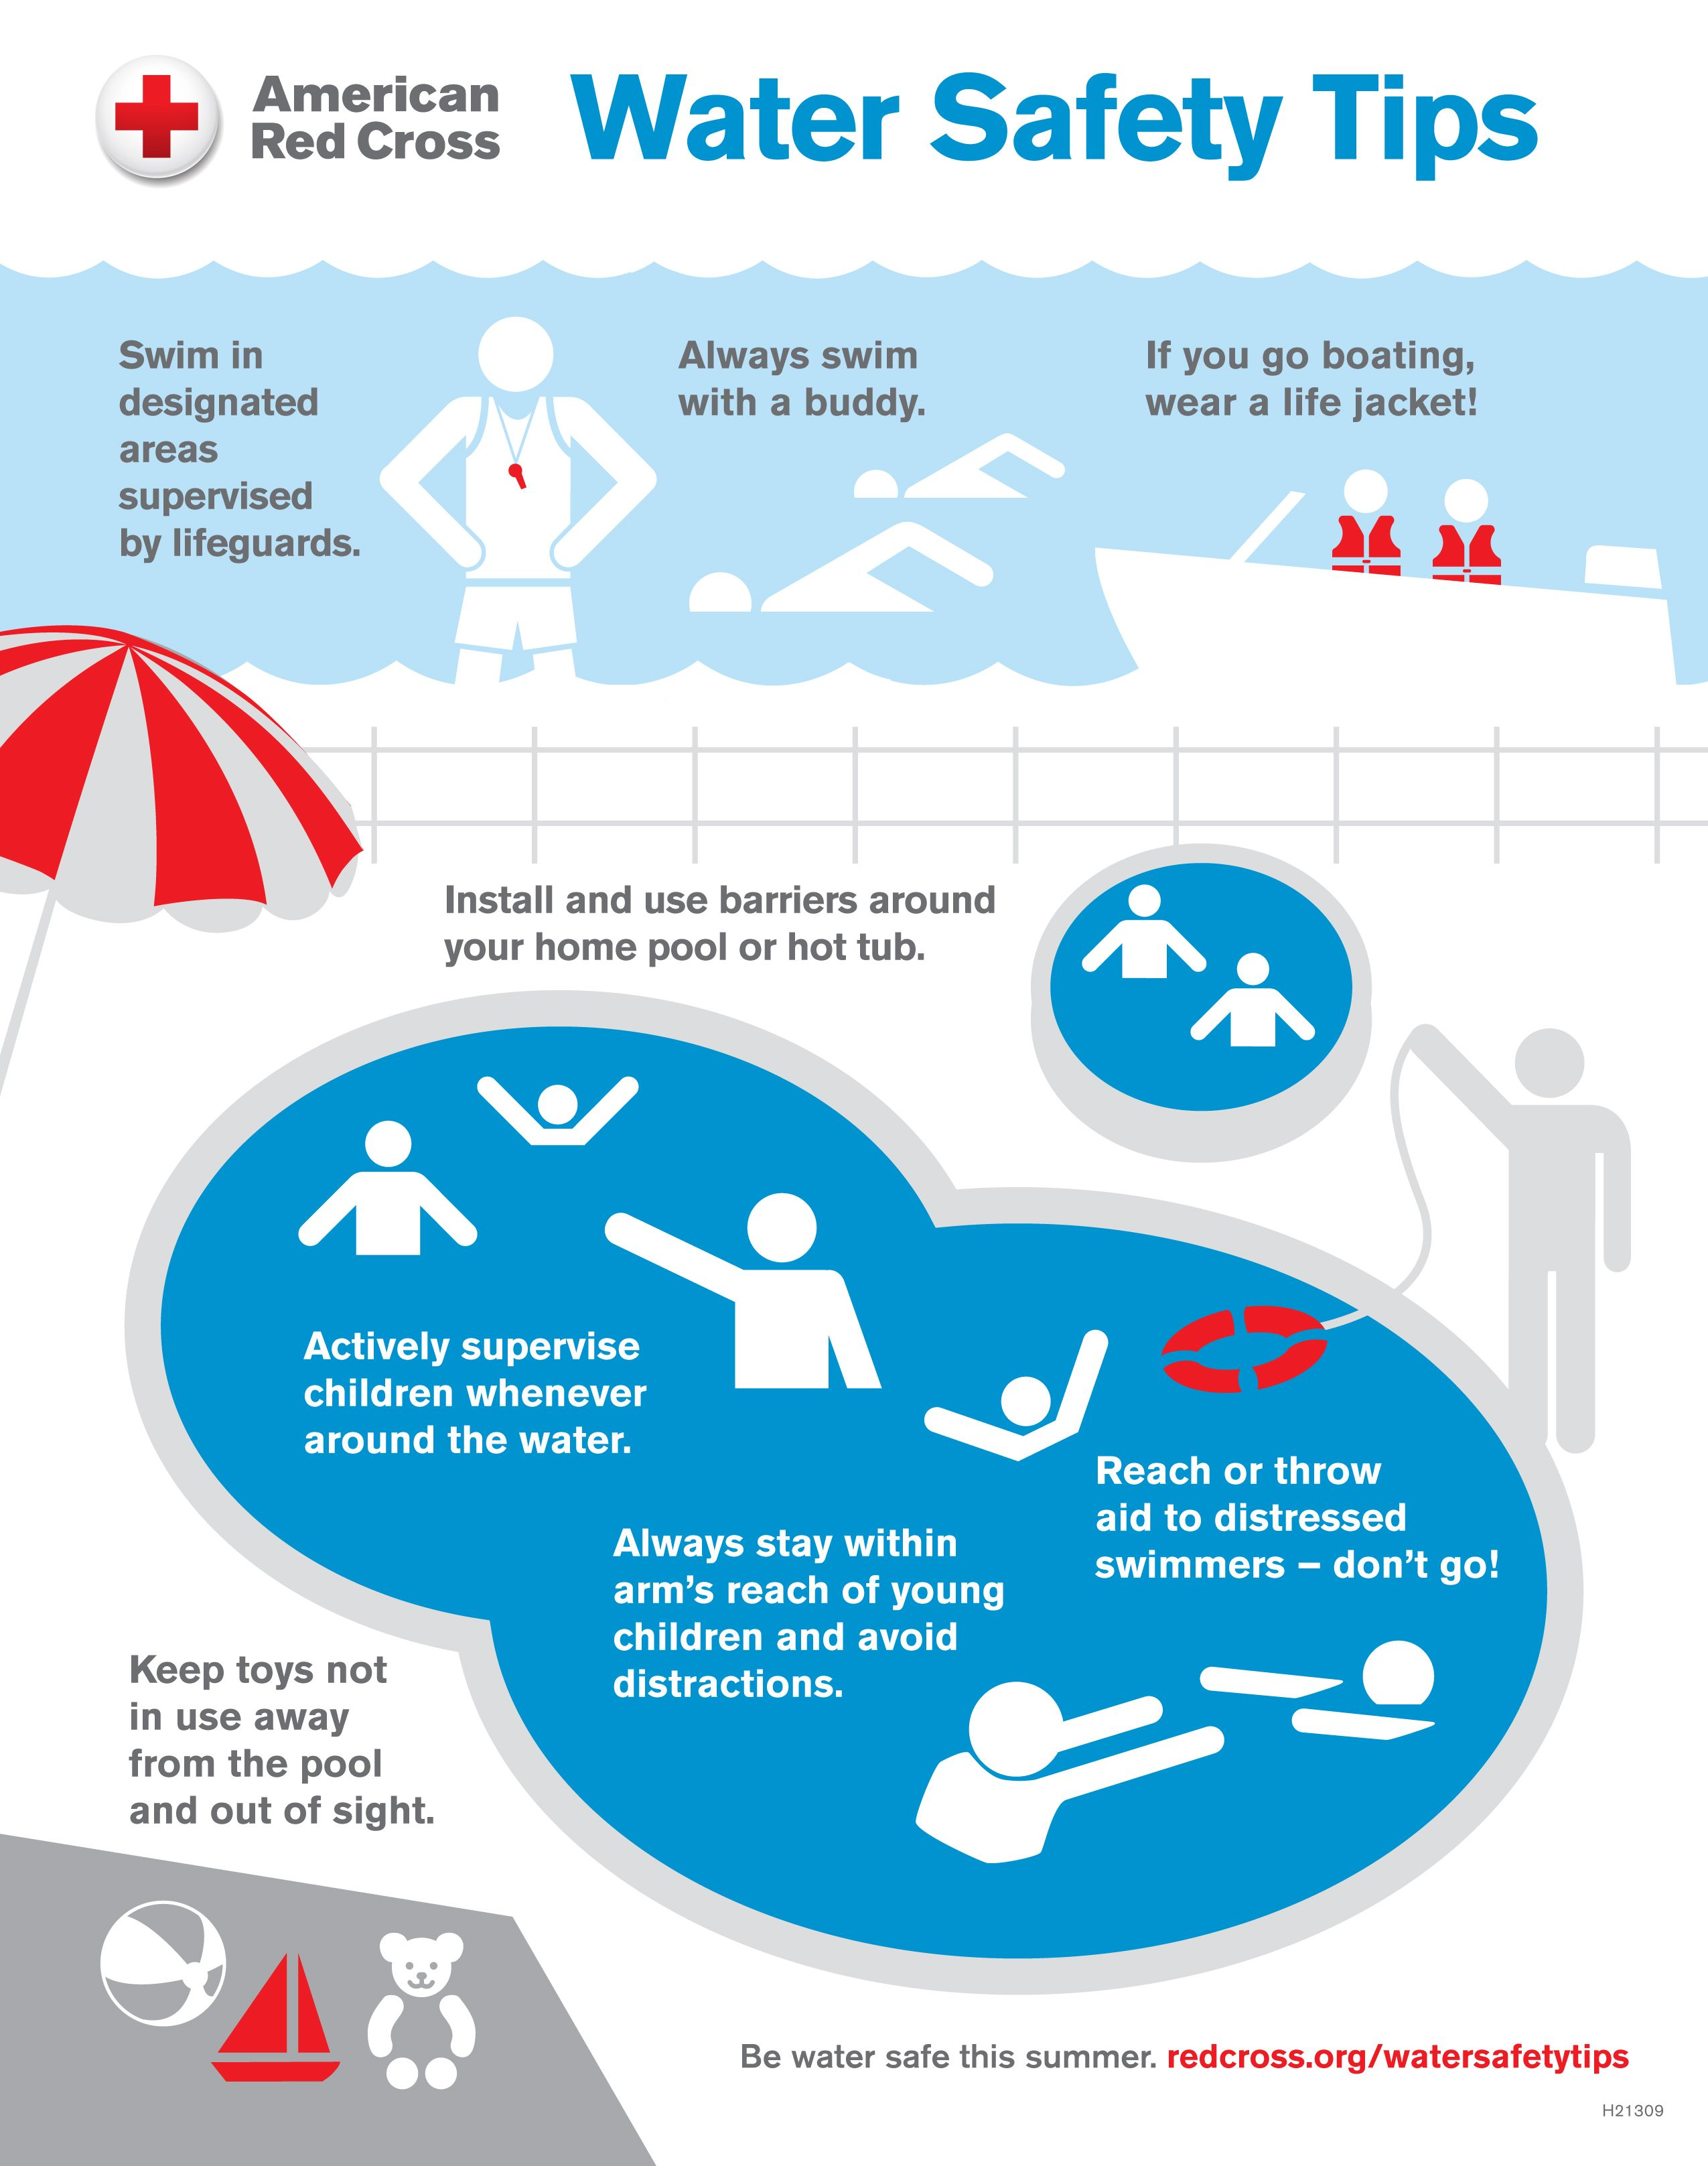 Red Cross Water Safety